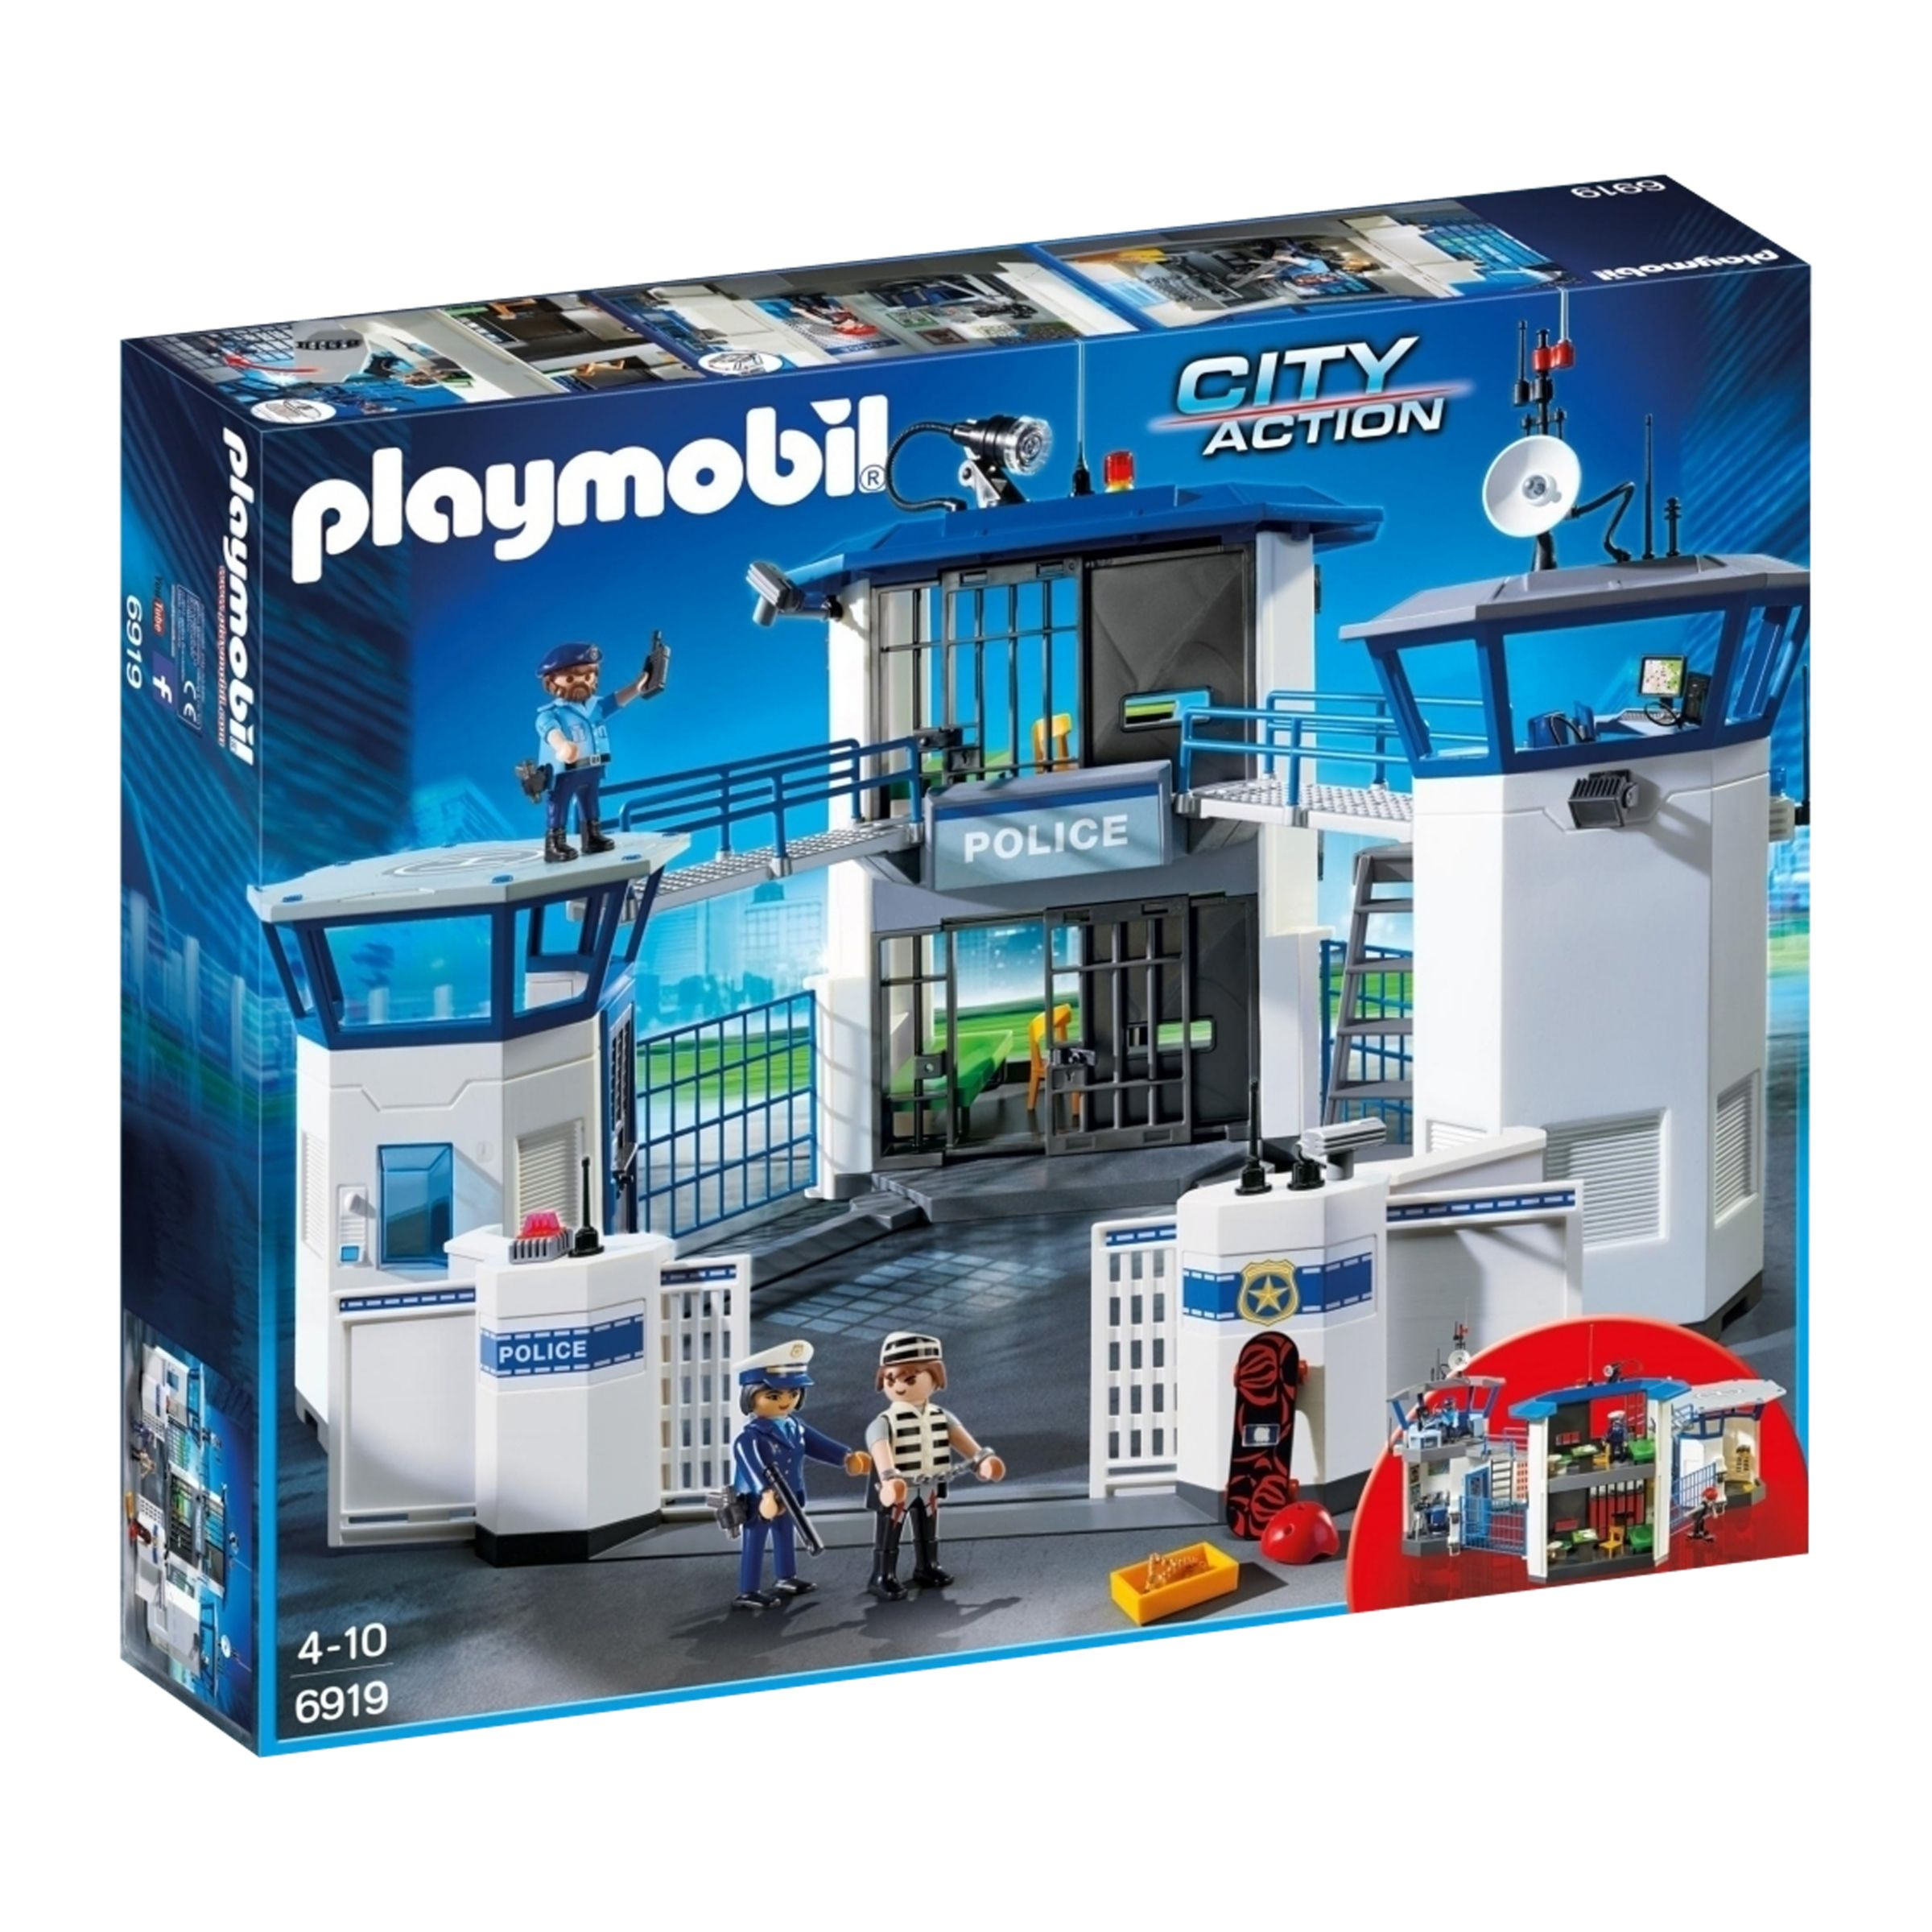 PLAYMOBIL Playmobil City Action Police Headquarters with Prison